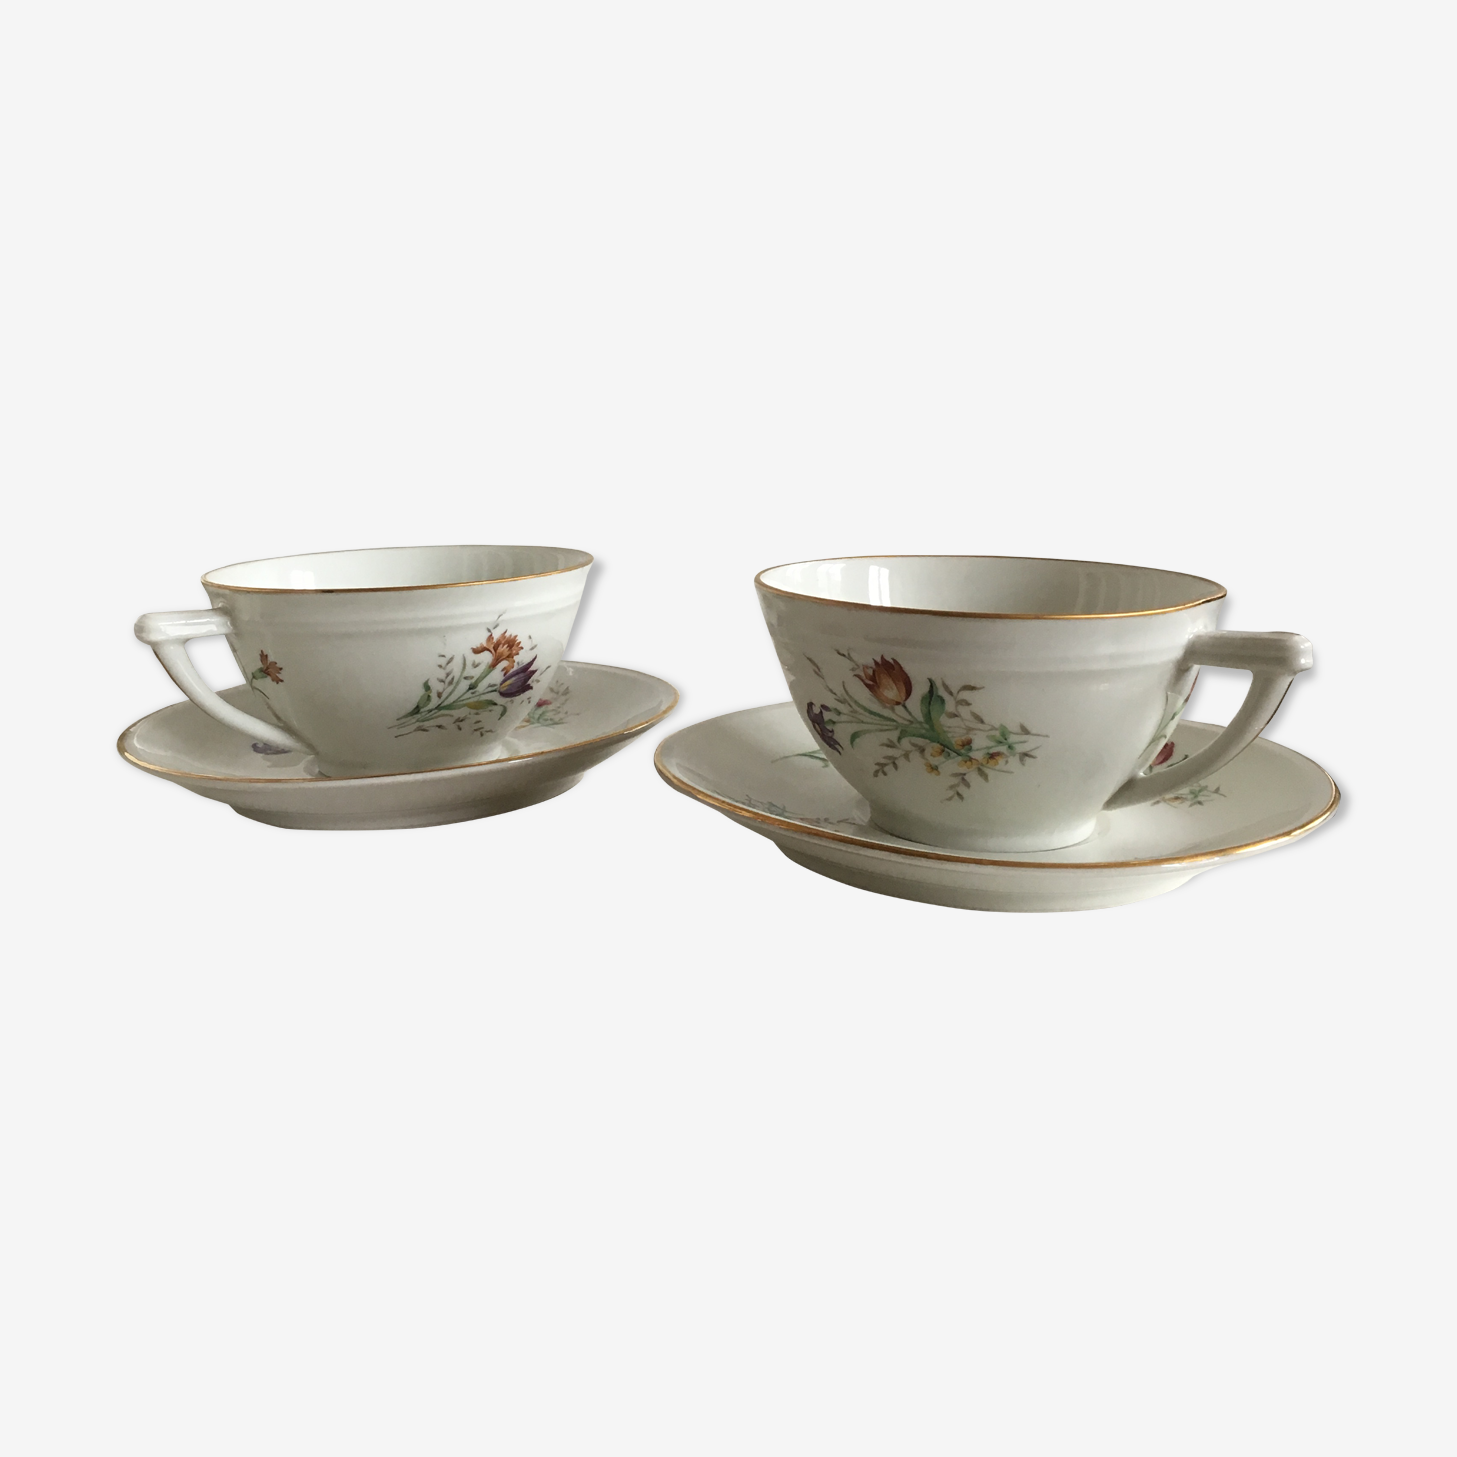 Duo of white Limoges porcelain cups with flowers